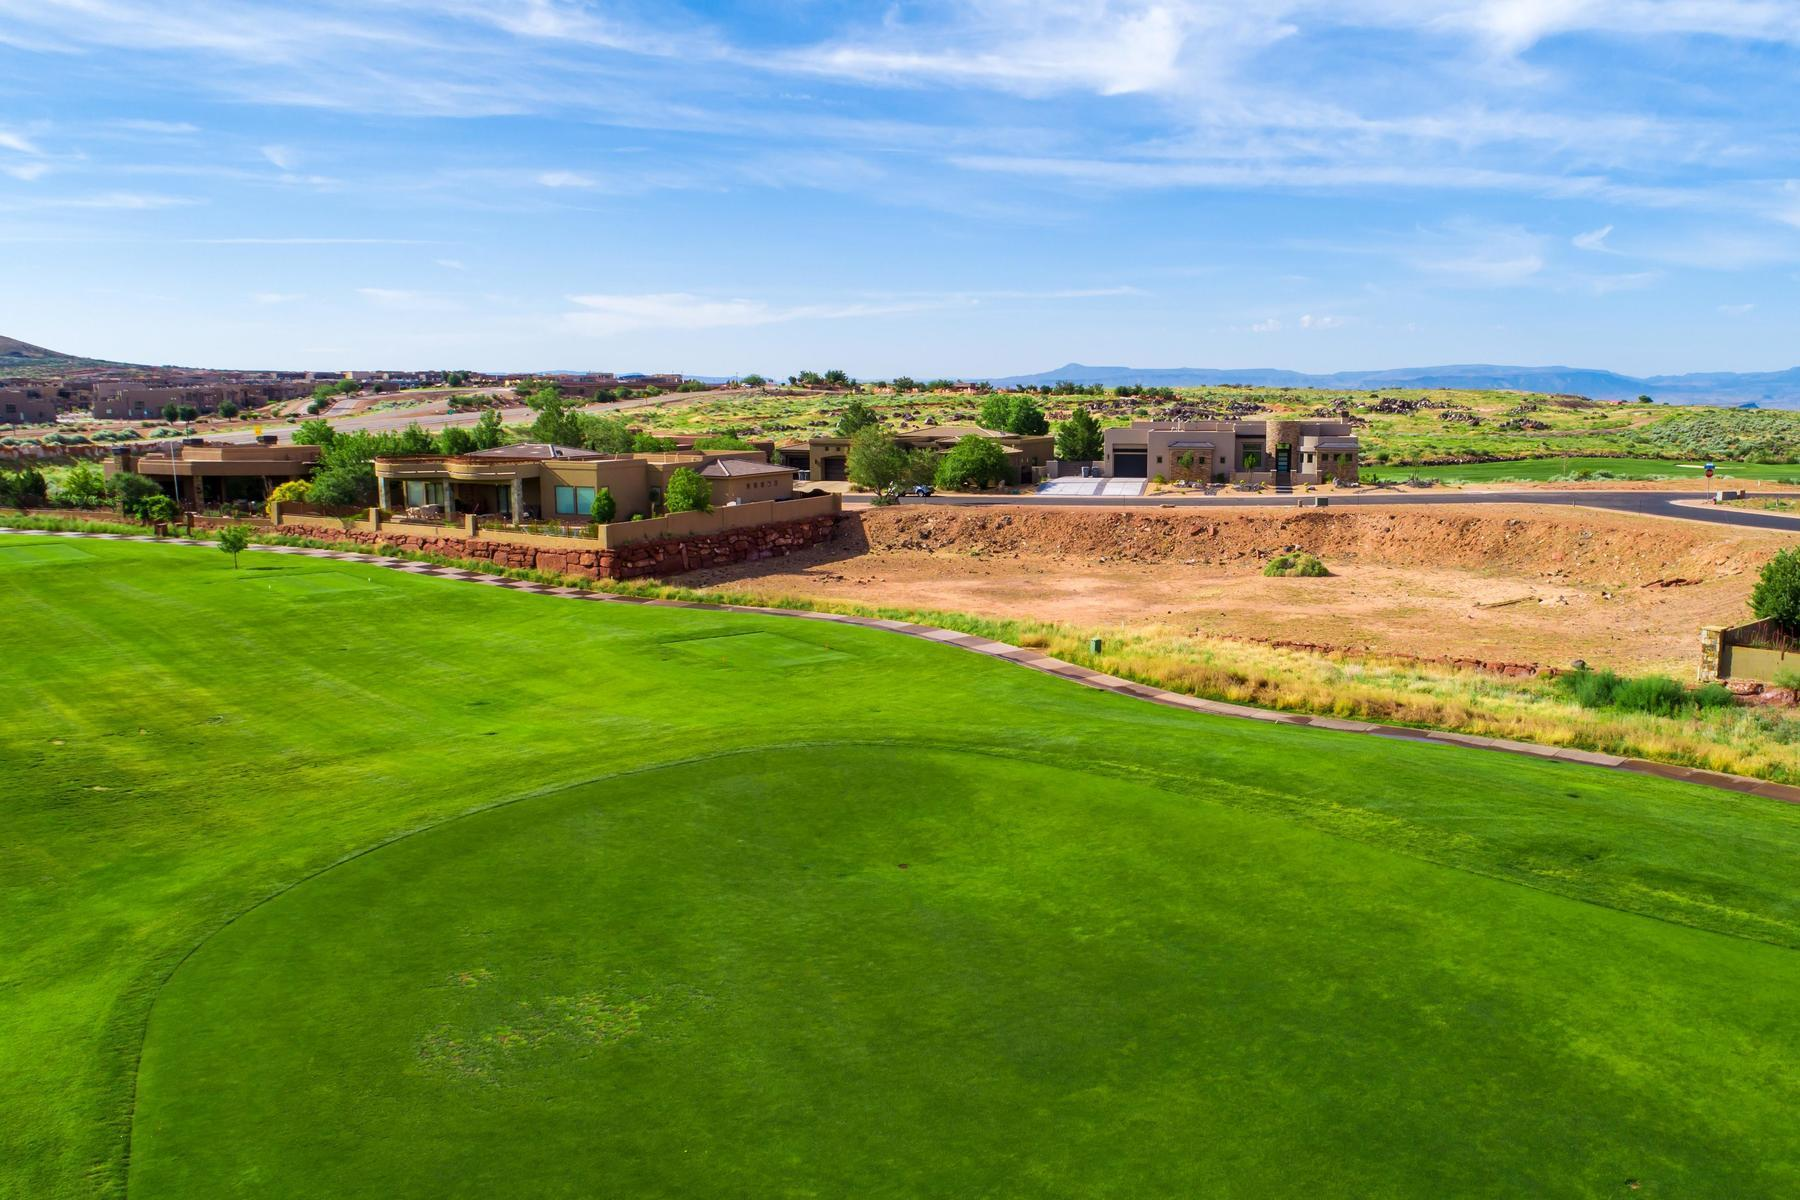 Located on the 11th fairway of The Ledges Golf Course. A private gated community with Snow Canyon and Pine Mtn. views. Build your dream home in an area that offers so many outdoor activities